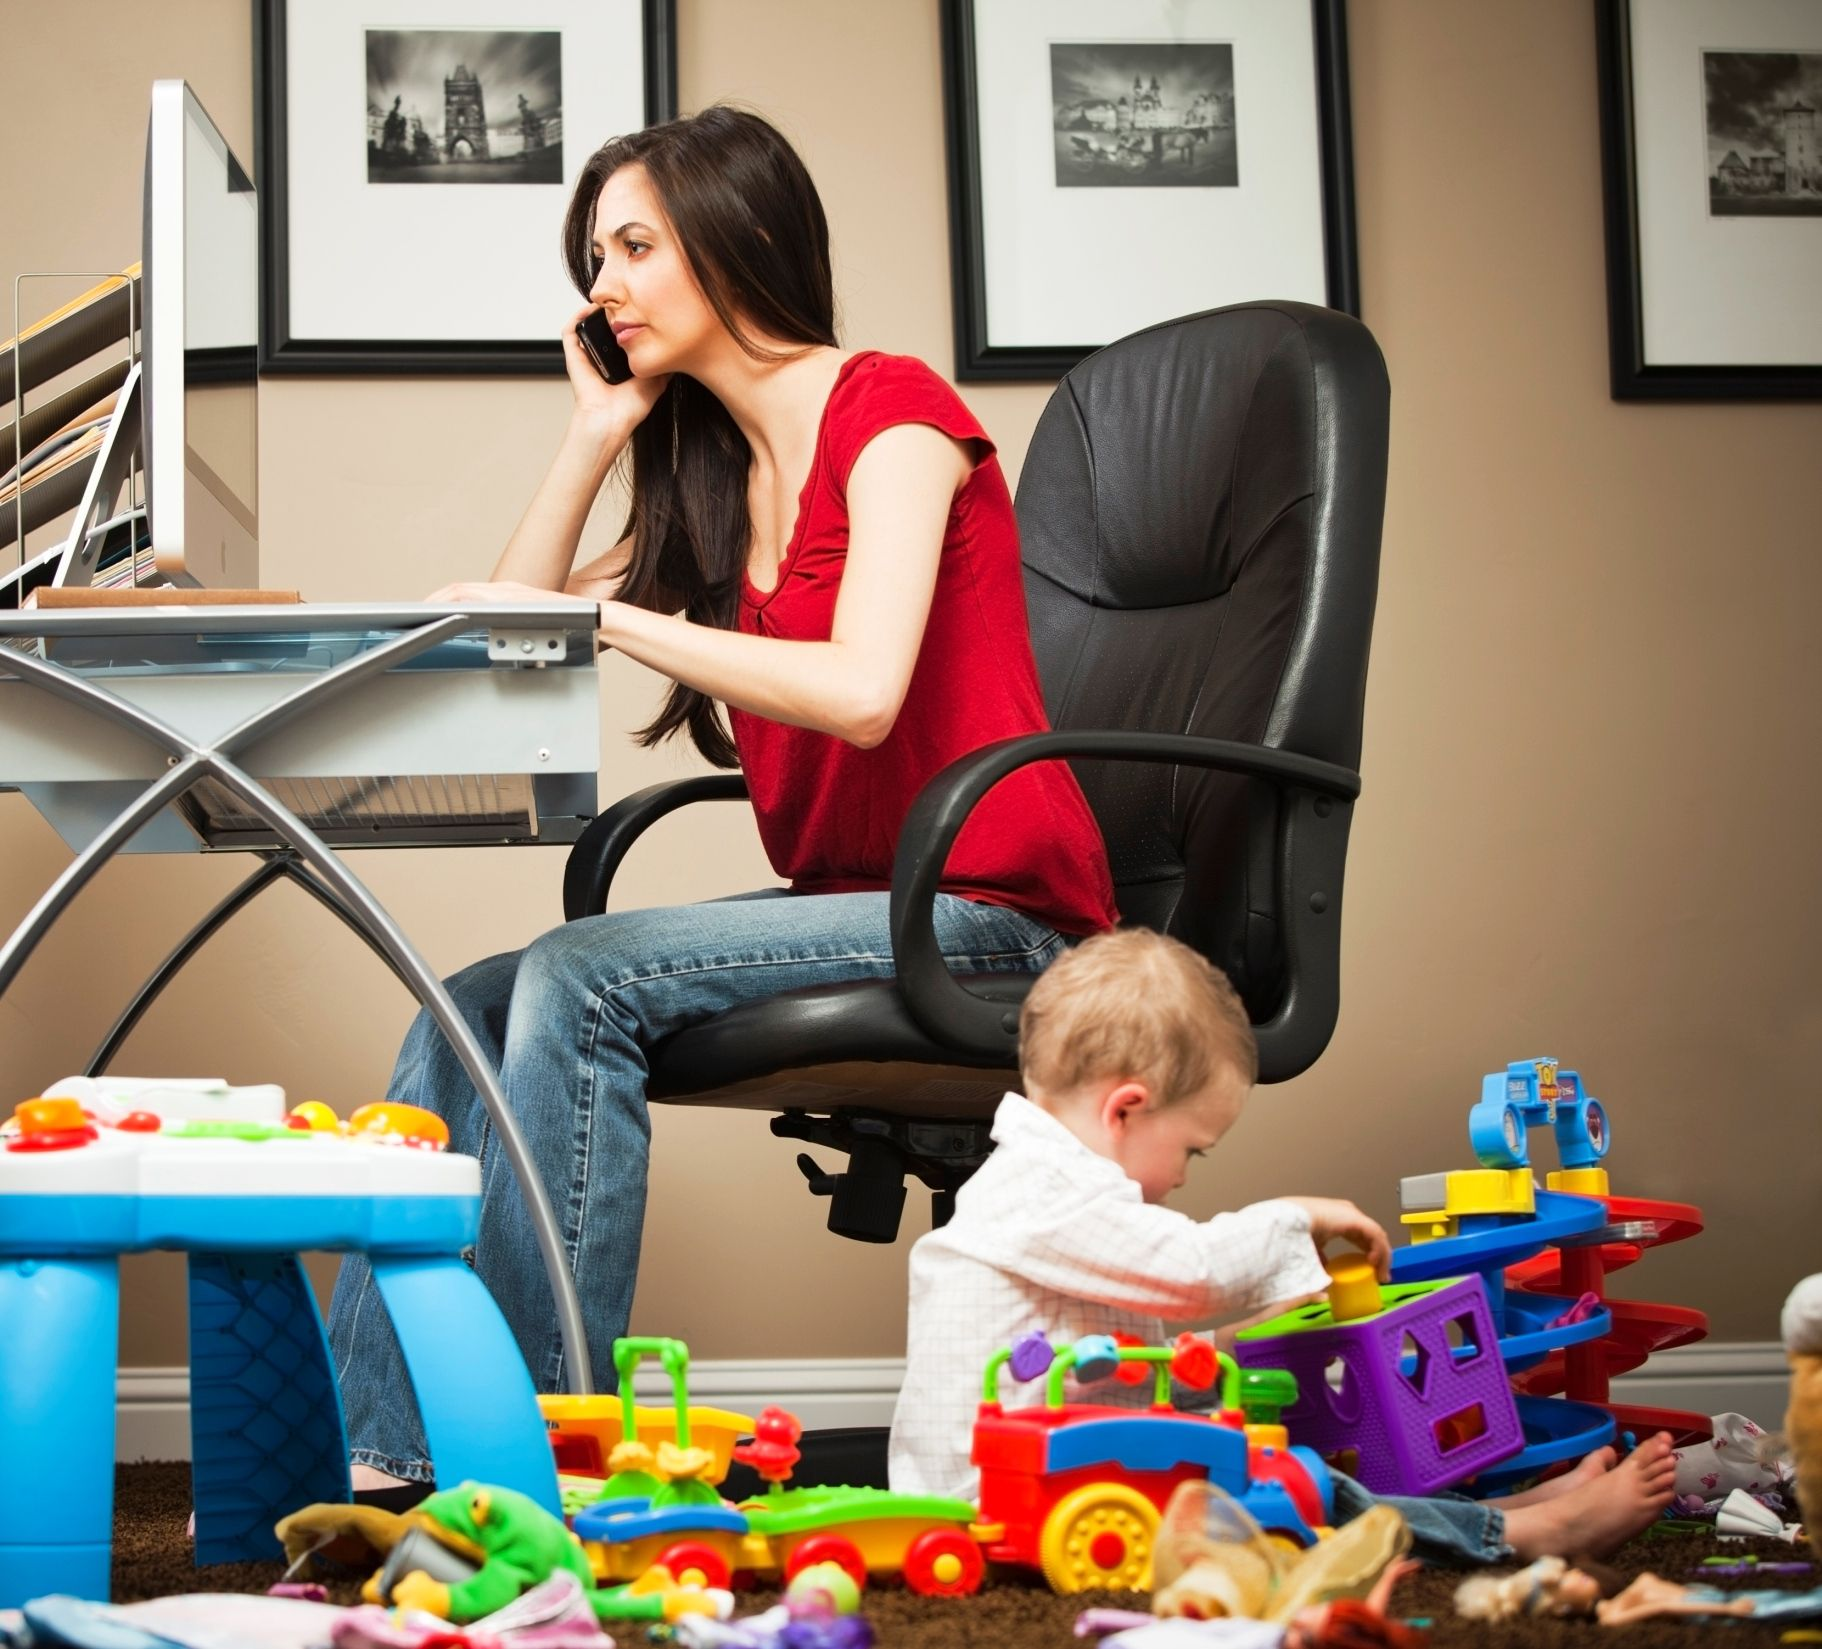 The Best Home Based Business Ideas for Stay at Home Moms  Dads